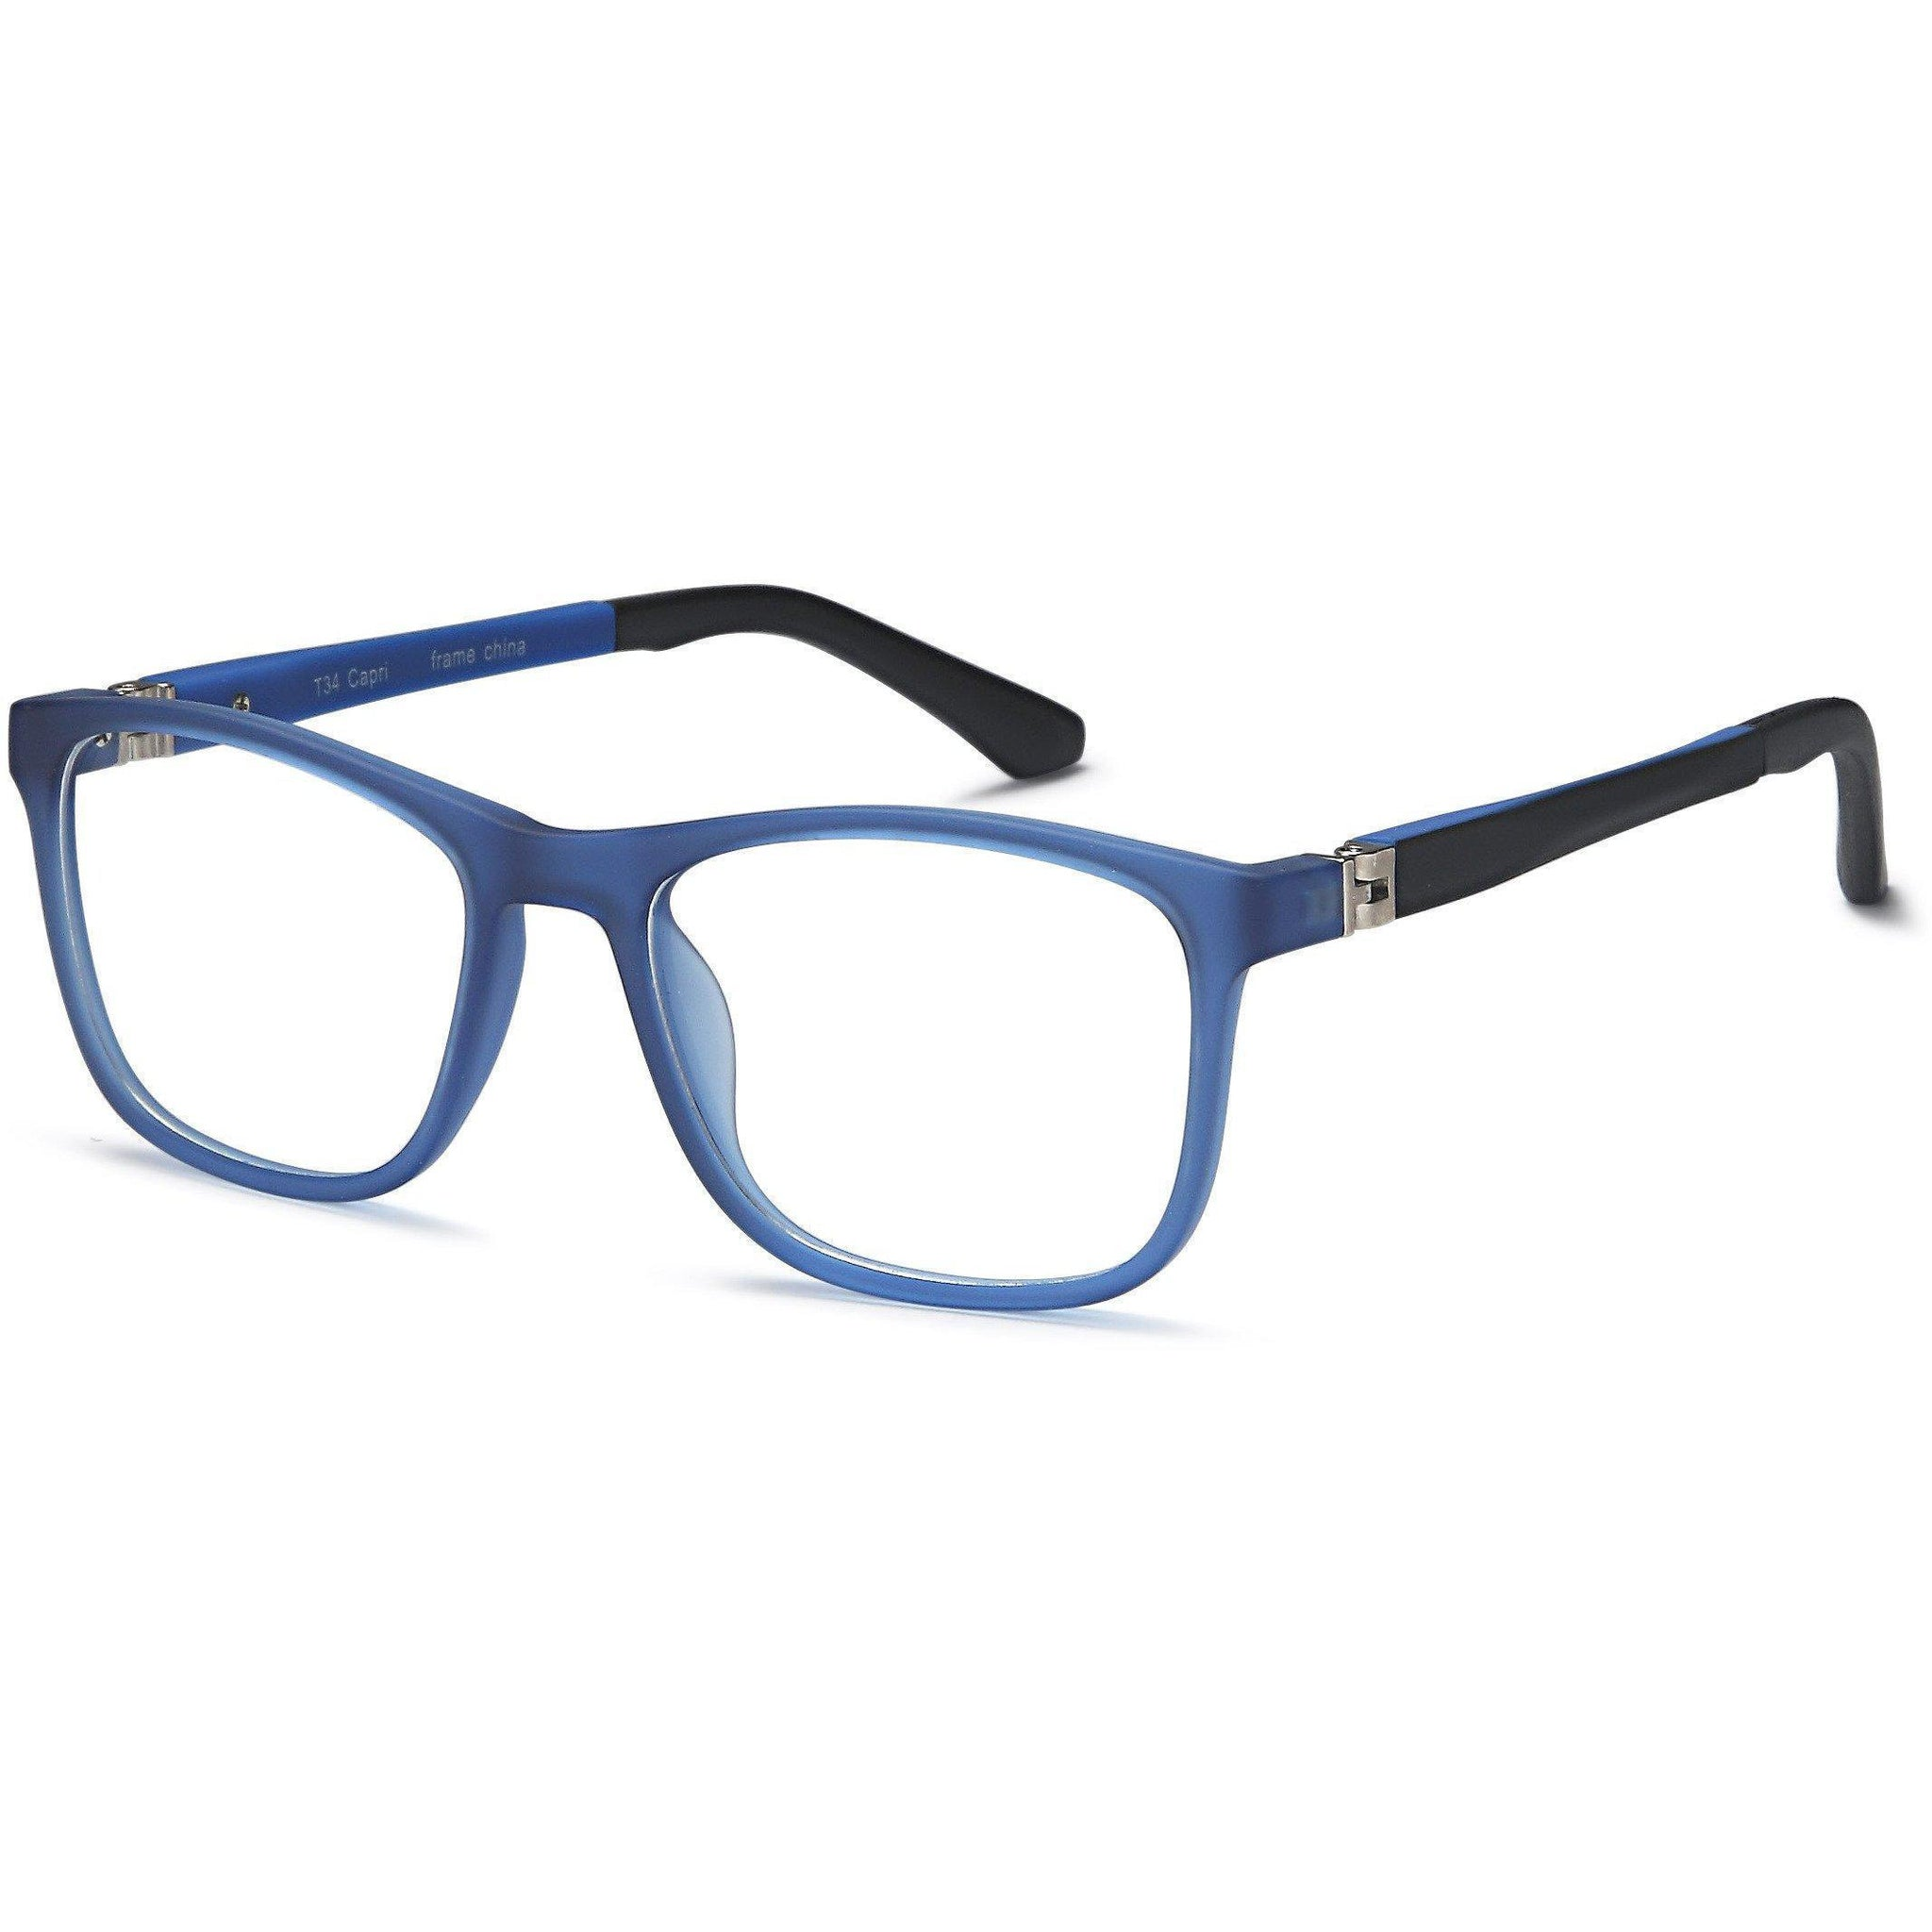 OnTrend Prescription Glasses Avery Eyeglasses Frames